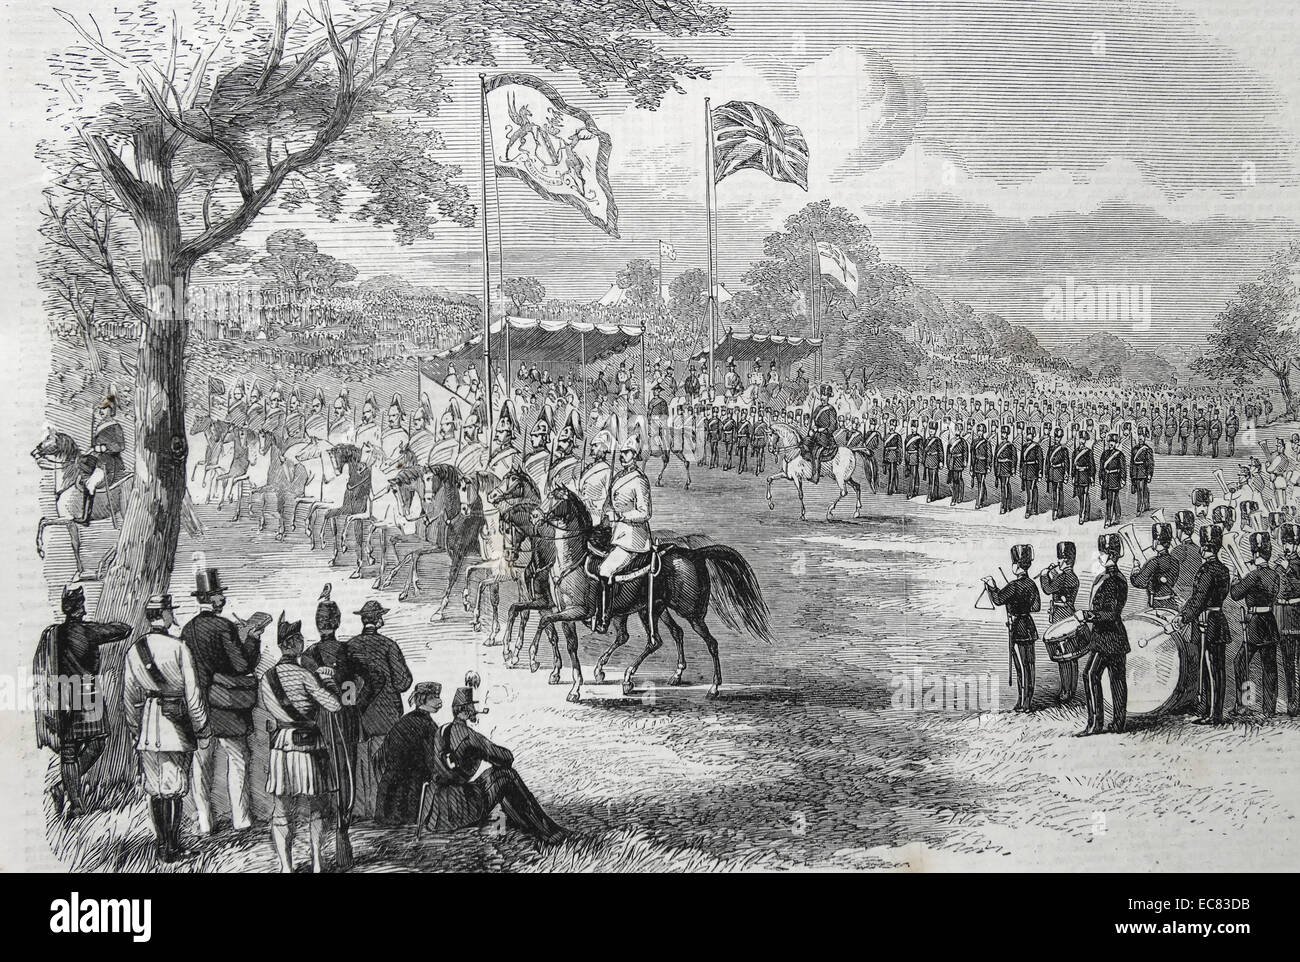 The 1st Lancashire Mounted Rifles and the Artillery Brigade marching past; the Commissariat Department. - Stock Image